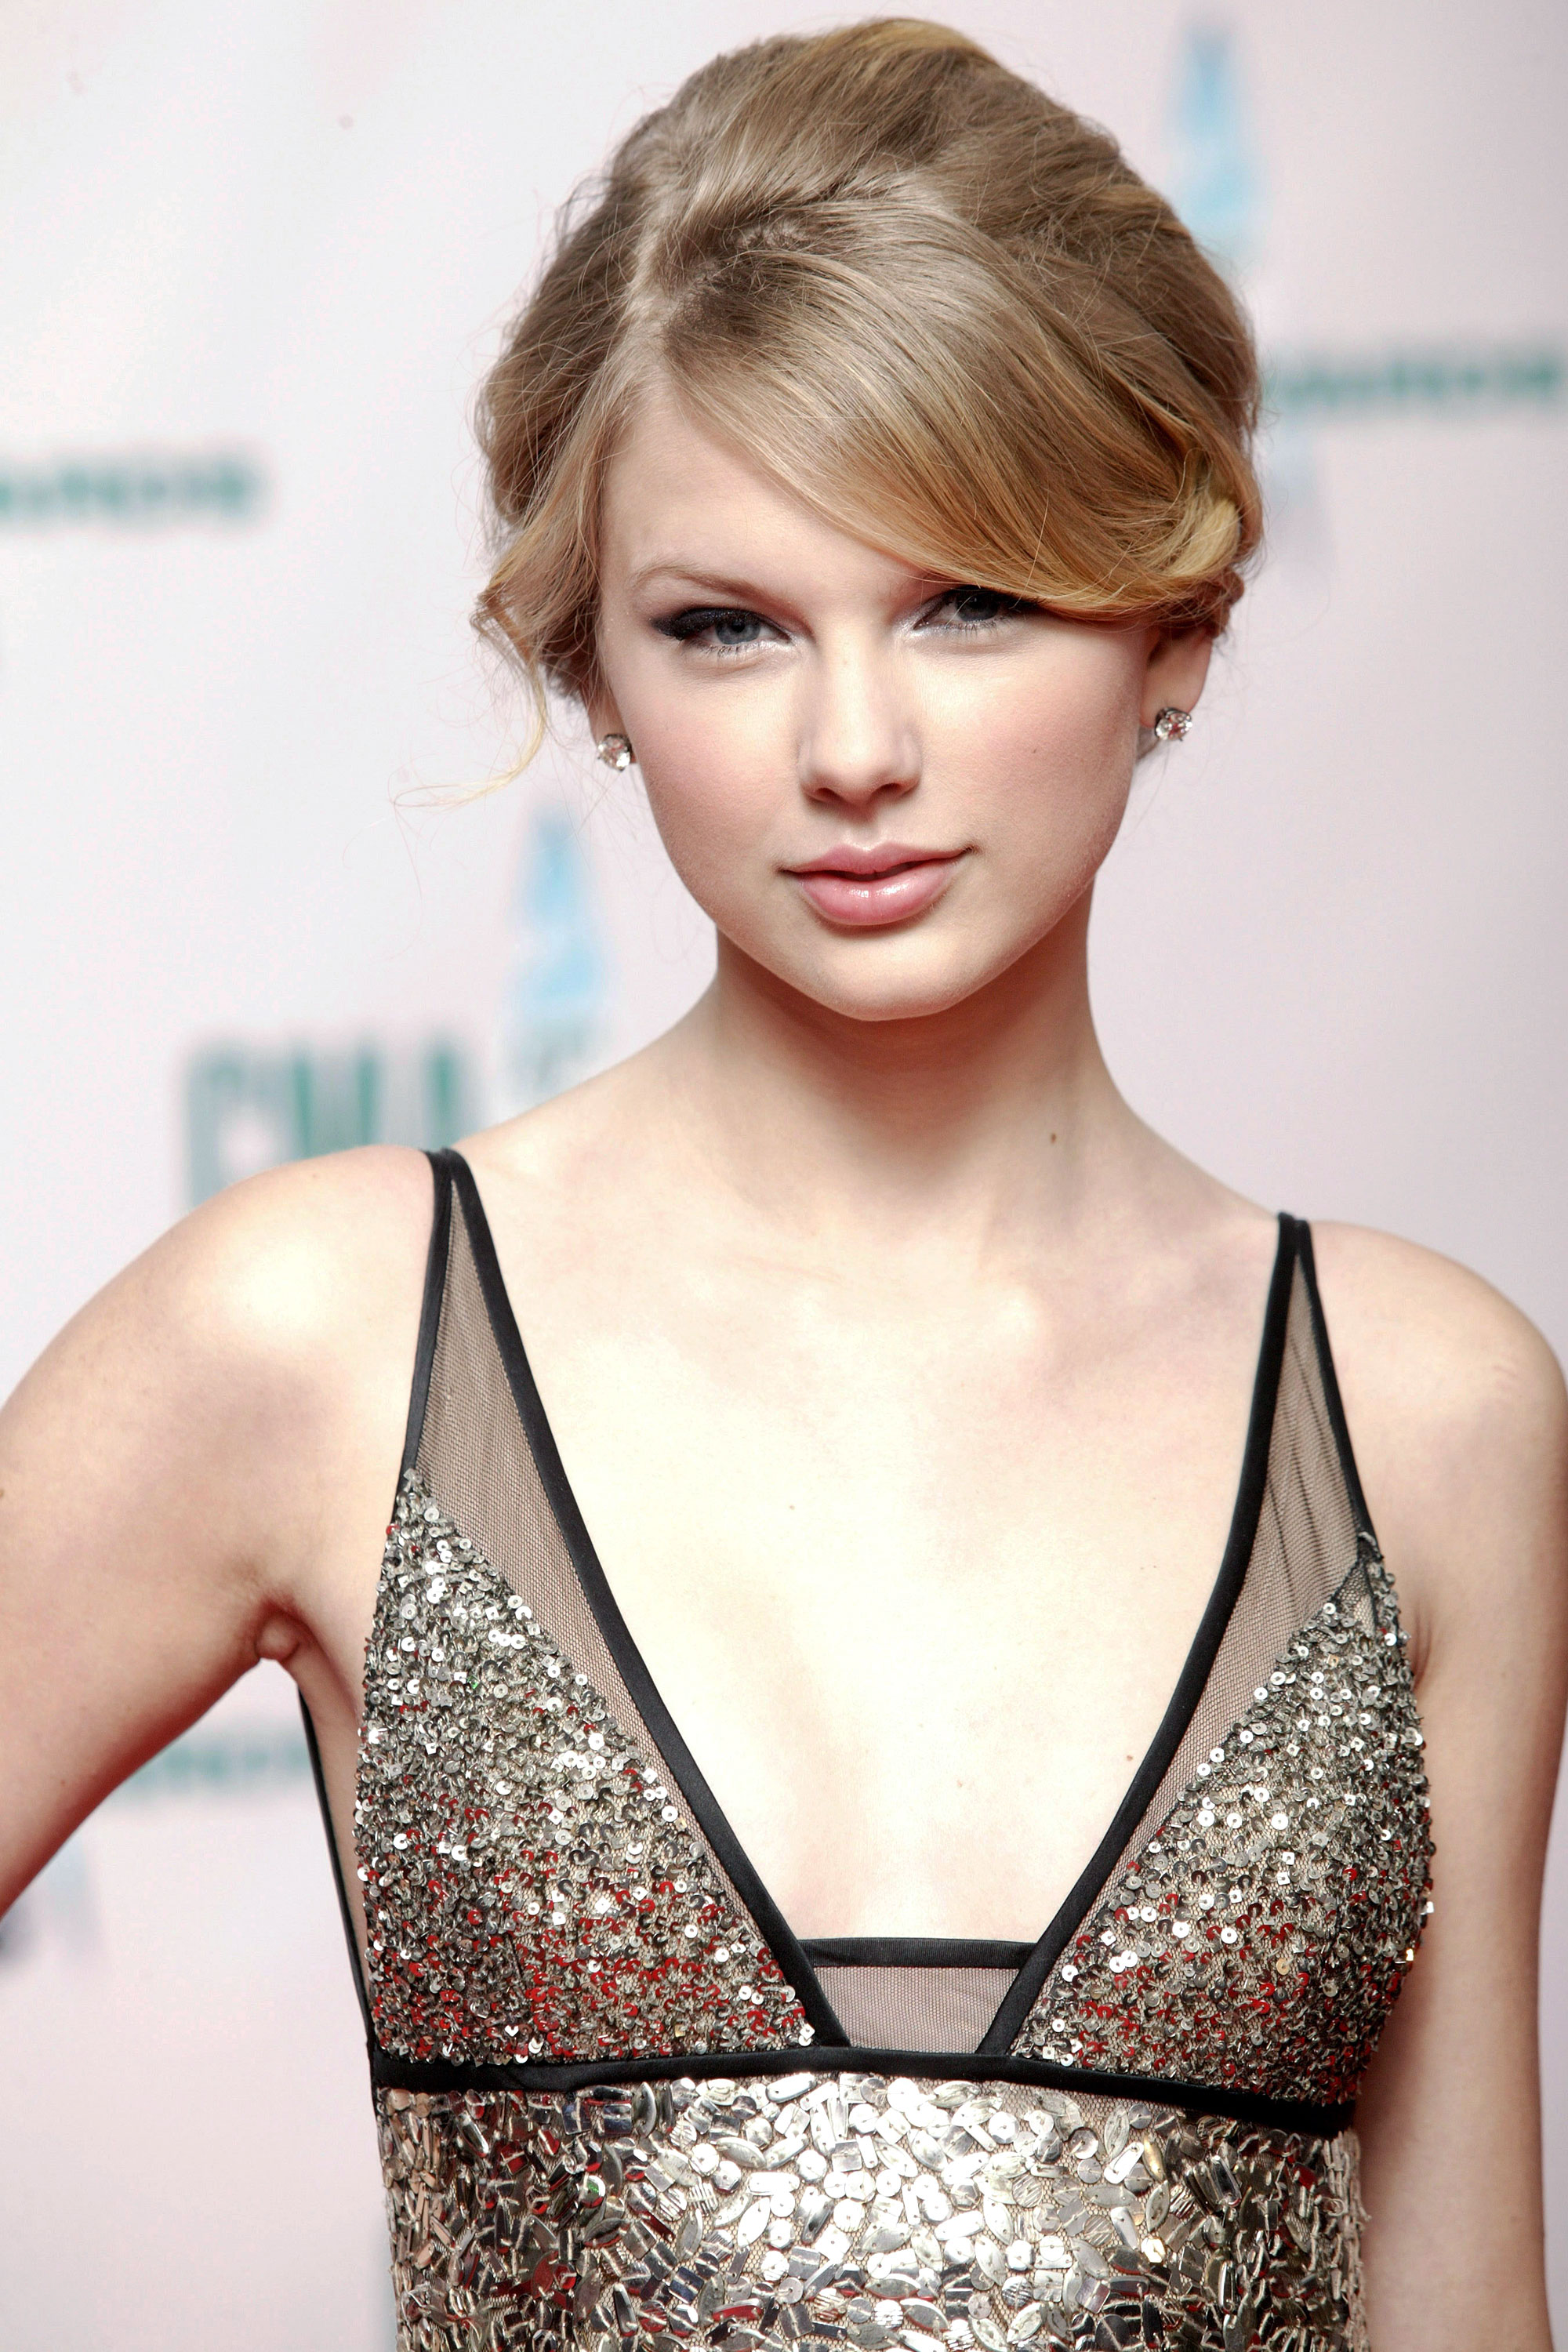 ... Swift Hairstyles - Taylor Swift's Curly, Straight, Short, Long Hair